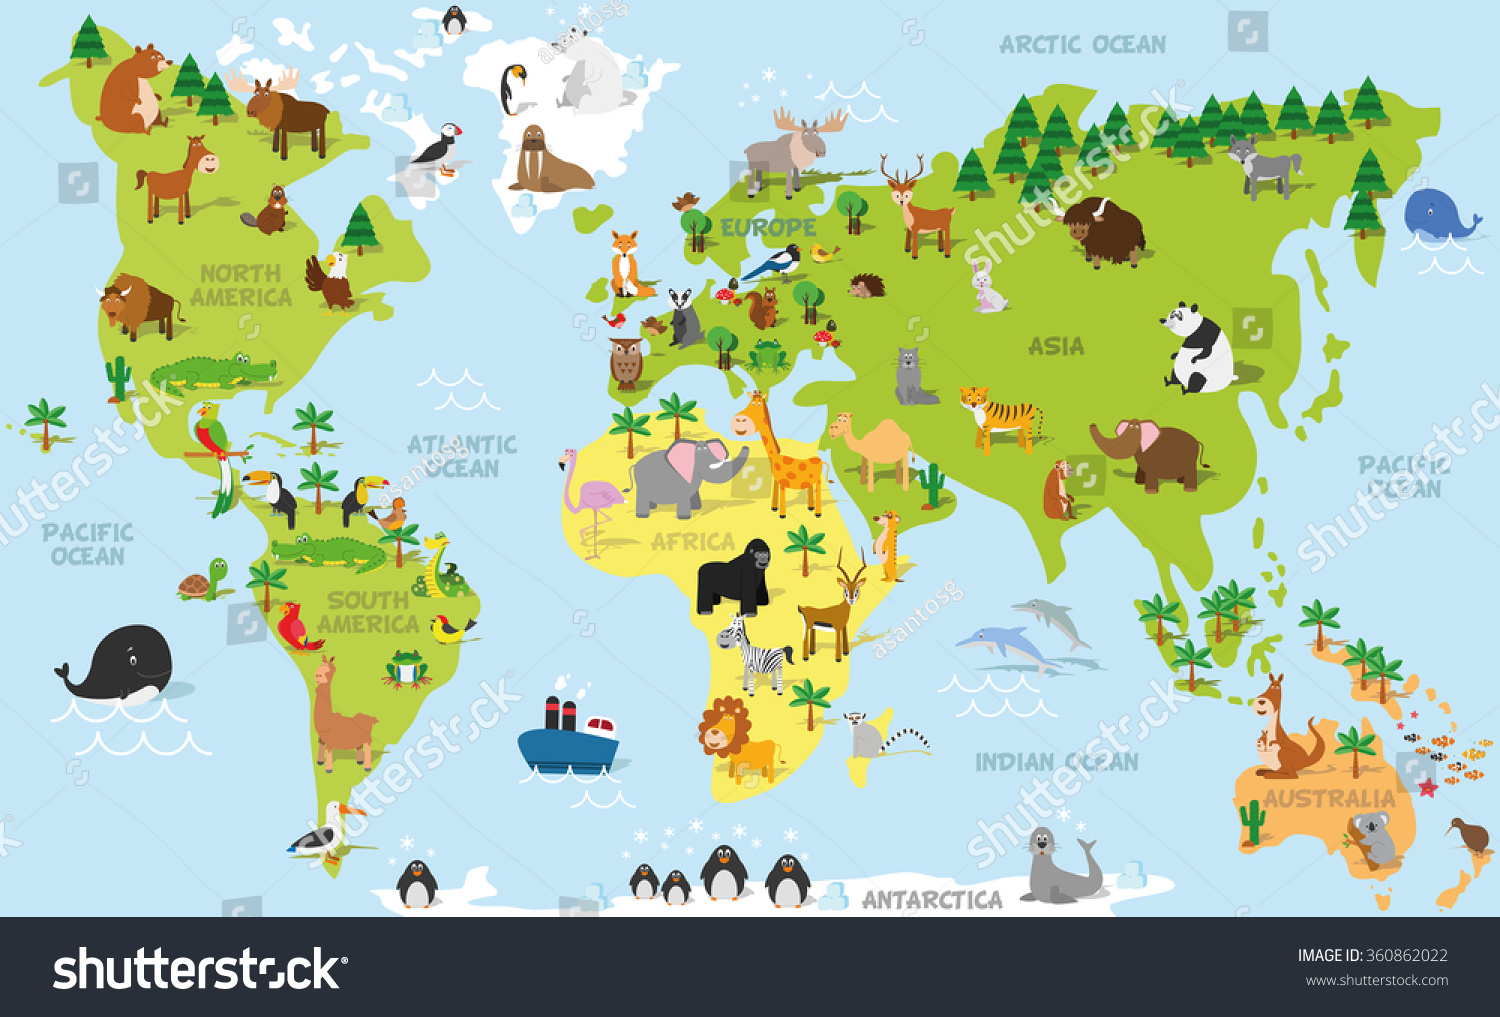 Funny cartoon world map traditional animals vectores en stock funny cartoon world map with traditional animals of all the continents and oceans vector illustration gumiabroncs Choice Image